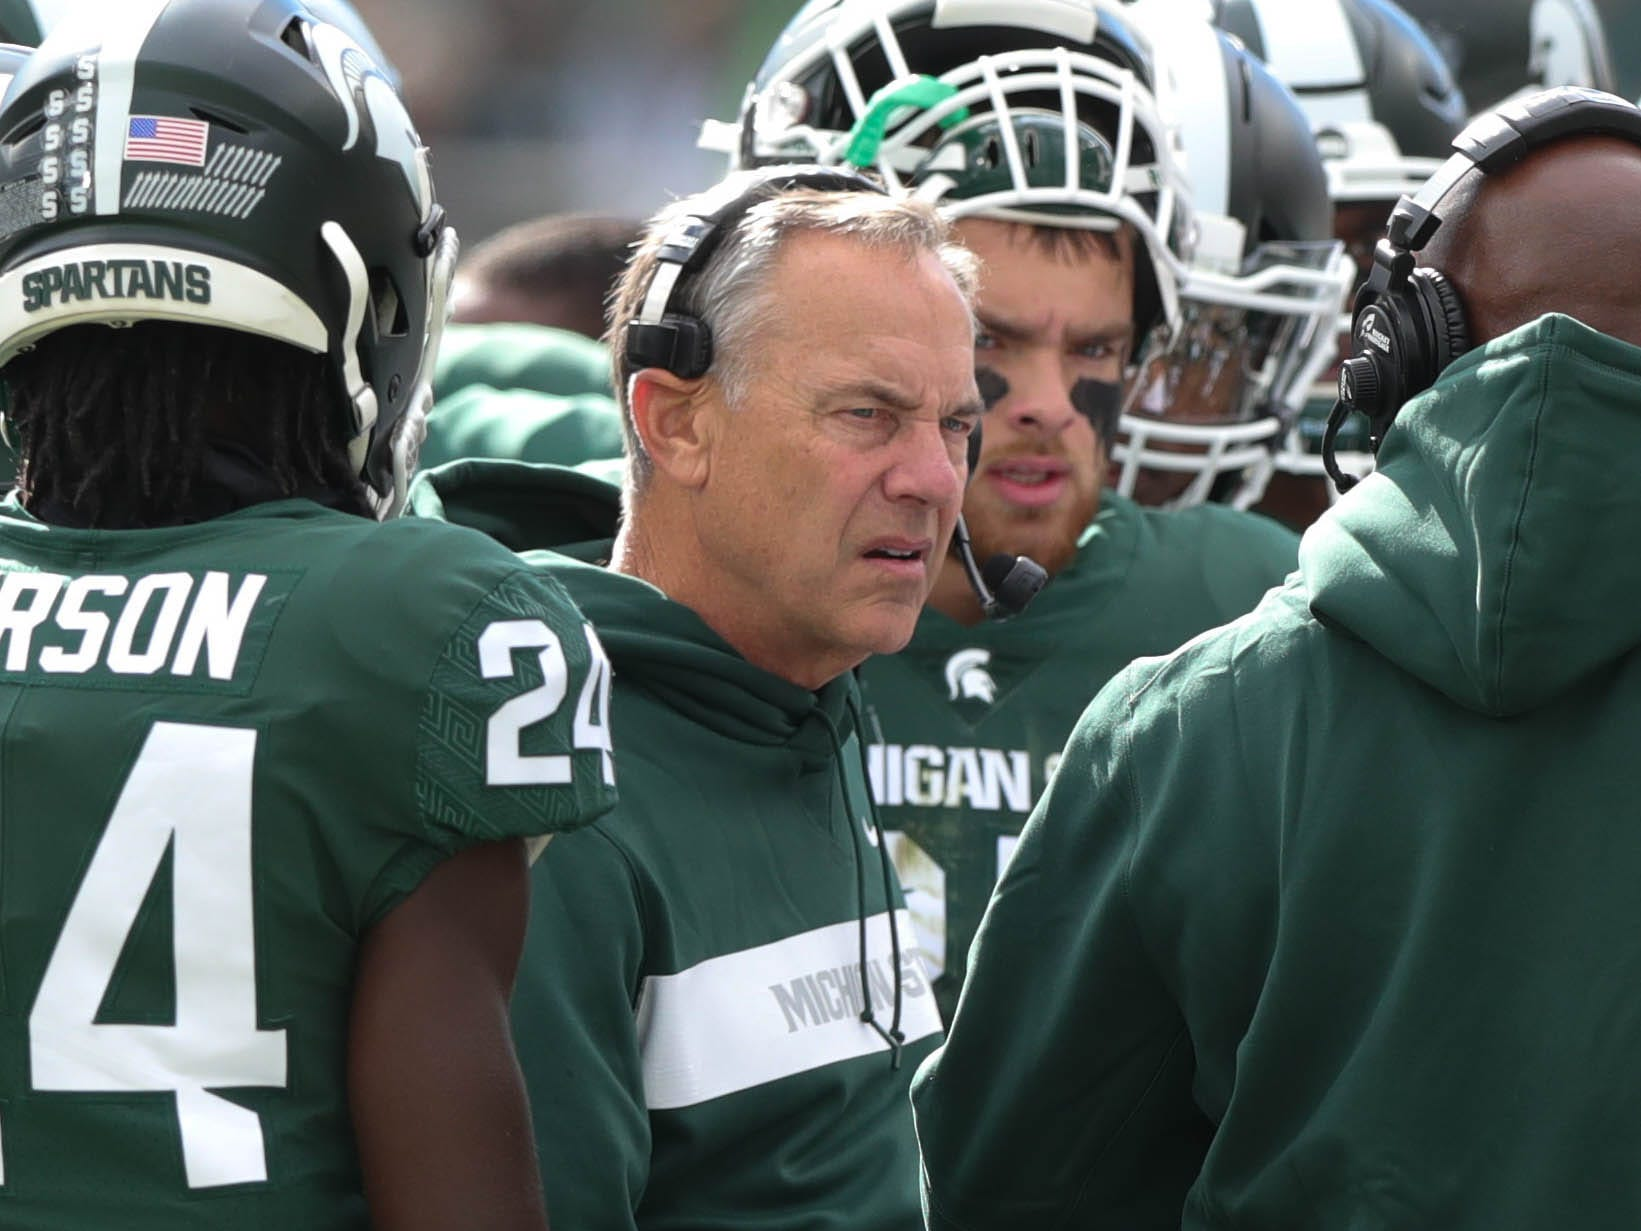 Michigan State coach Mark Dantonio on the sideline during the first half against Michigan on Saturday, Oct. 20, 2018, at Spartan Stadium.